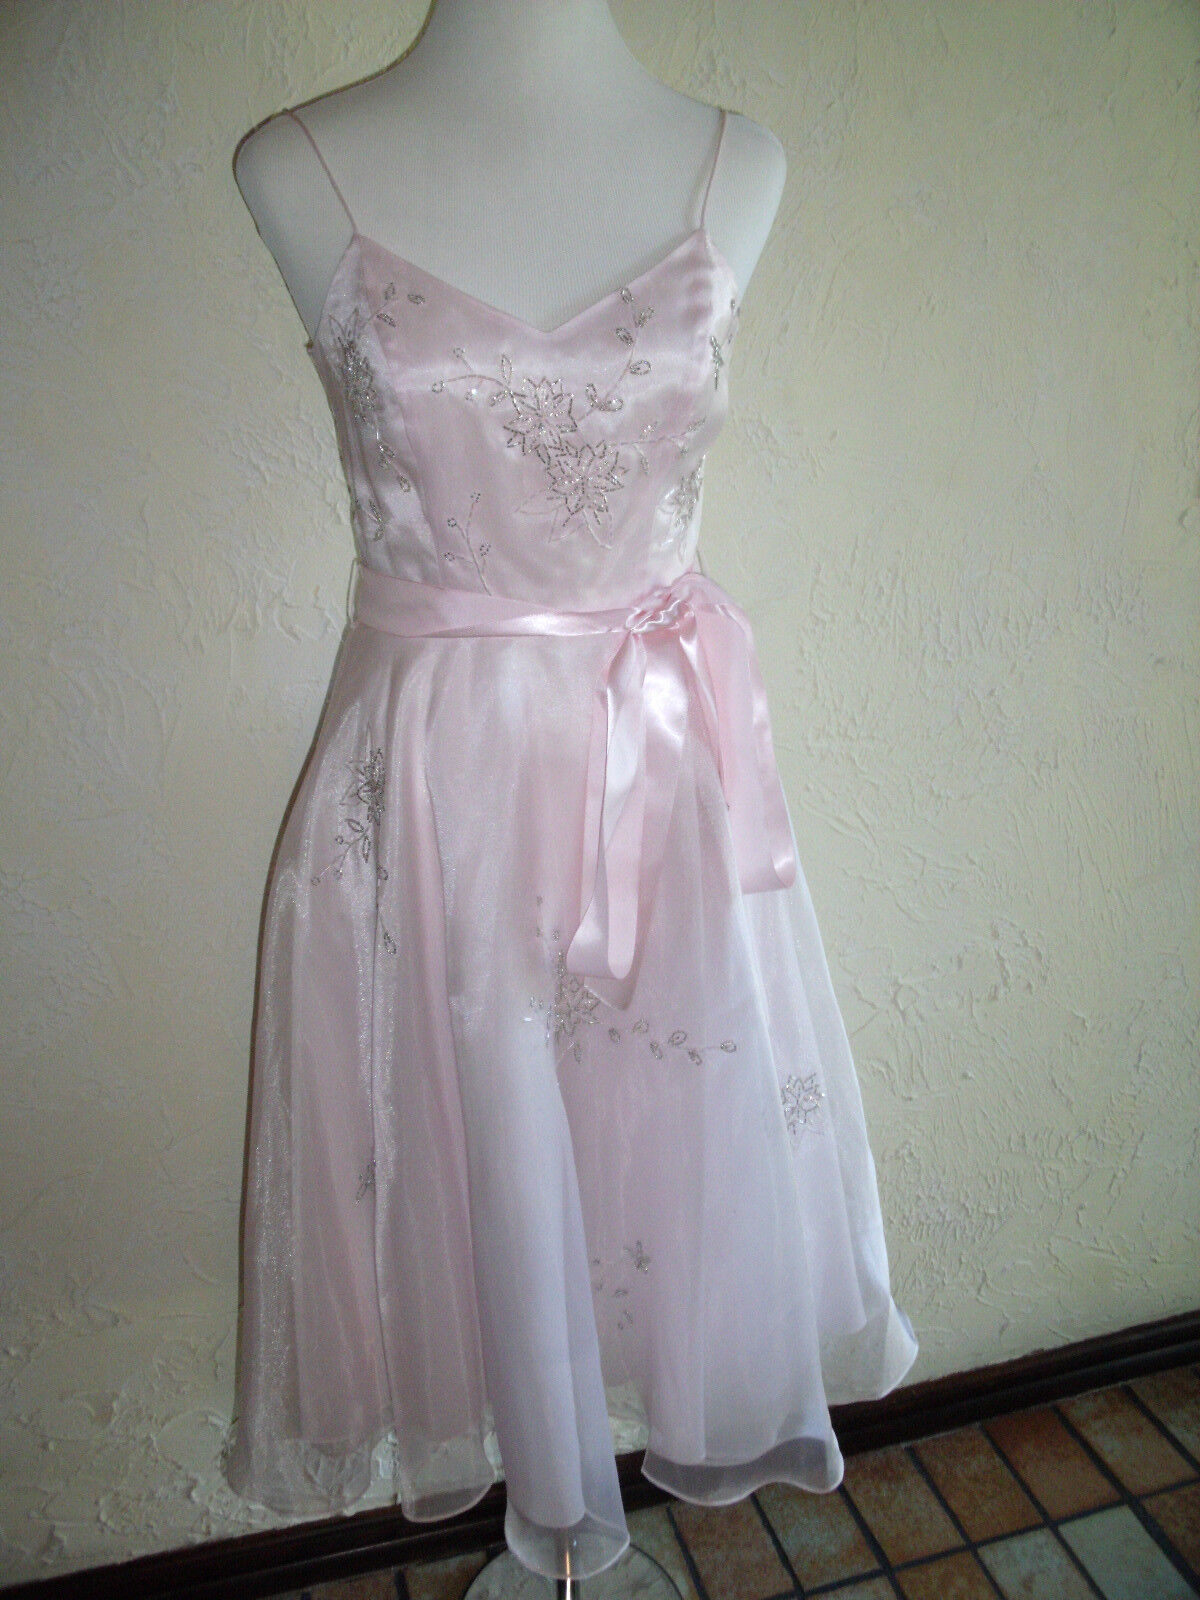 http://www.ebay.com/itm/NIKI-BY-NIKI-LIVAS-Size-4-Pink-Prom-Or-Homecoming-Dress-With-Spaghetti-Straps-/321494766972?pt=Bridesmaid_Dress&hash=item4ada94d57c